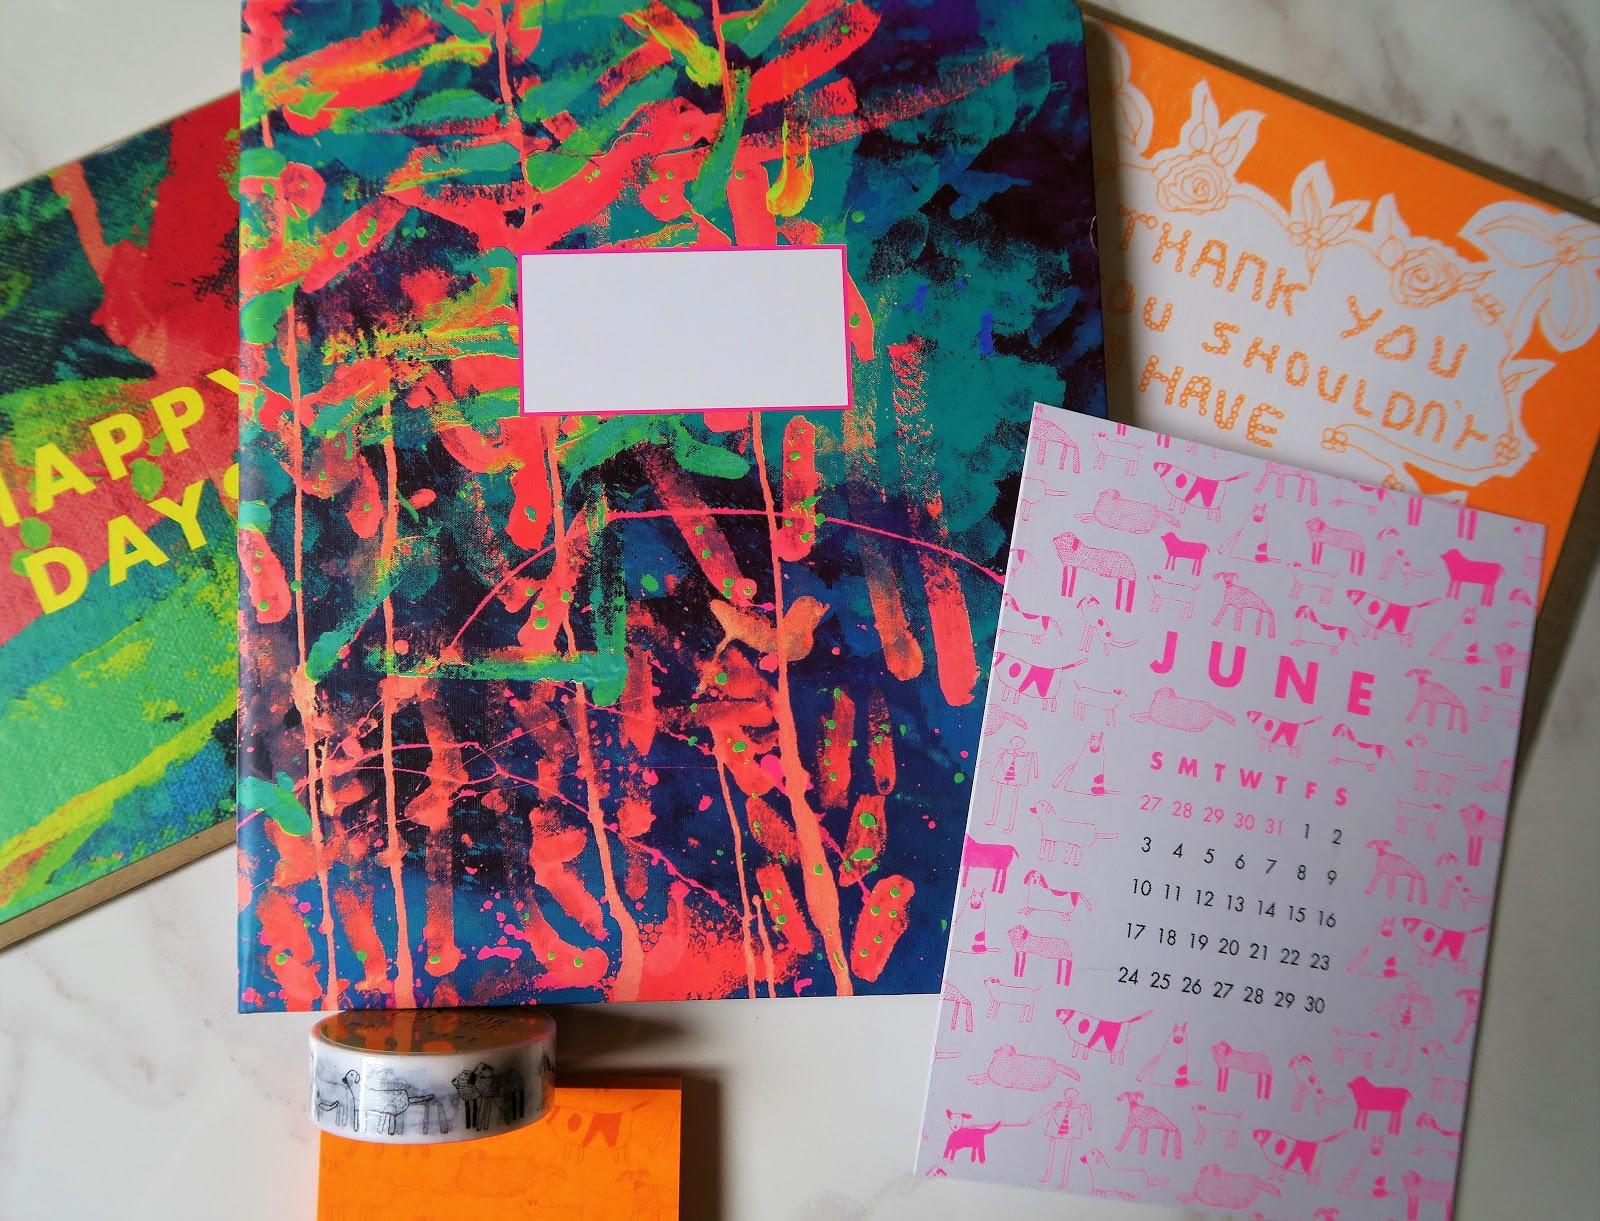 april papergang subscription art house box stationery liquidgrain liquid grain